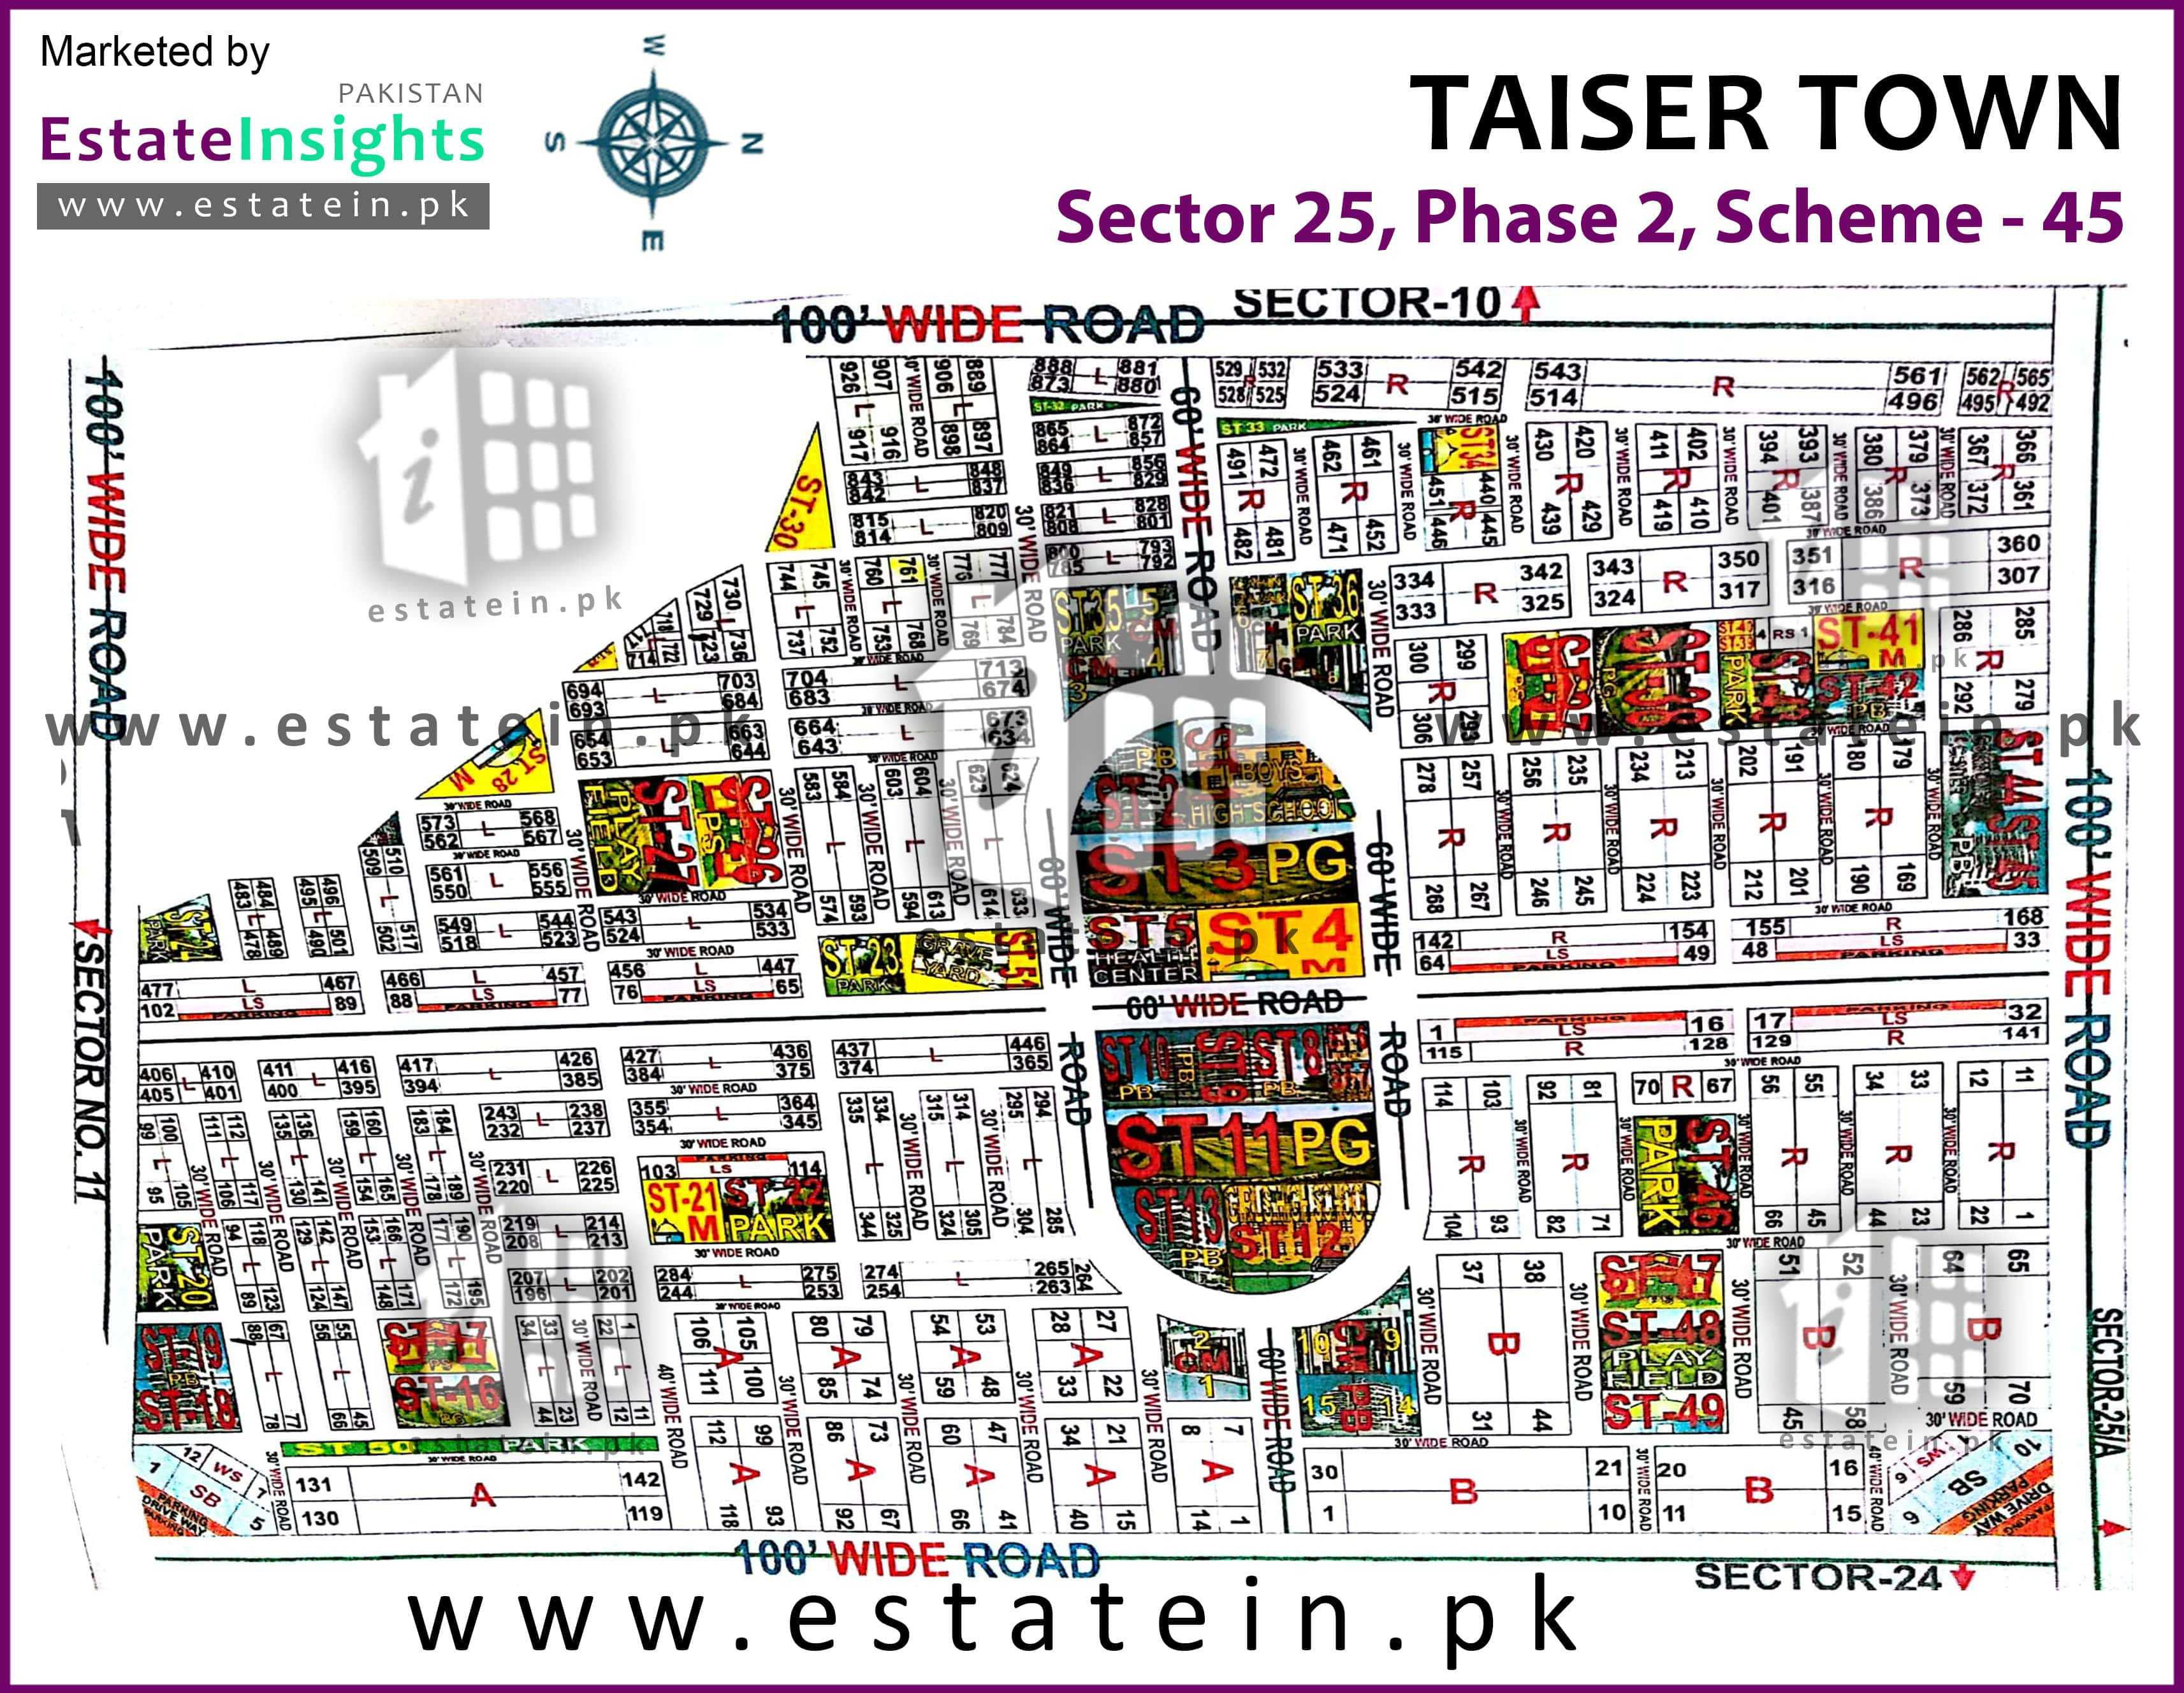 Site Plan of Sector 25 of Taiser Town Phase II